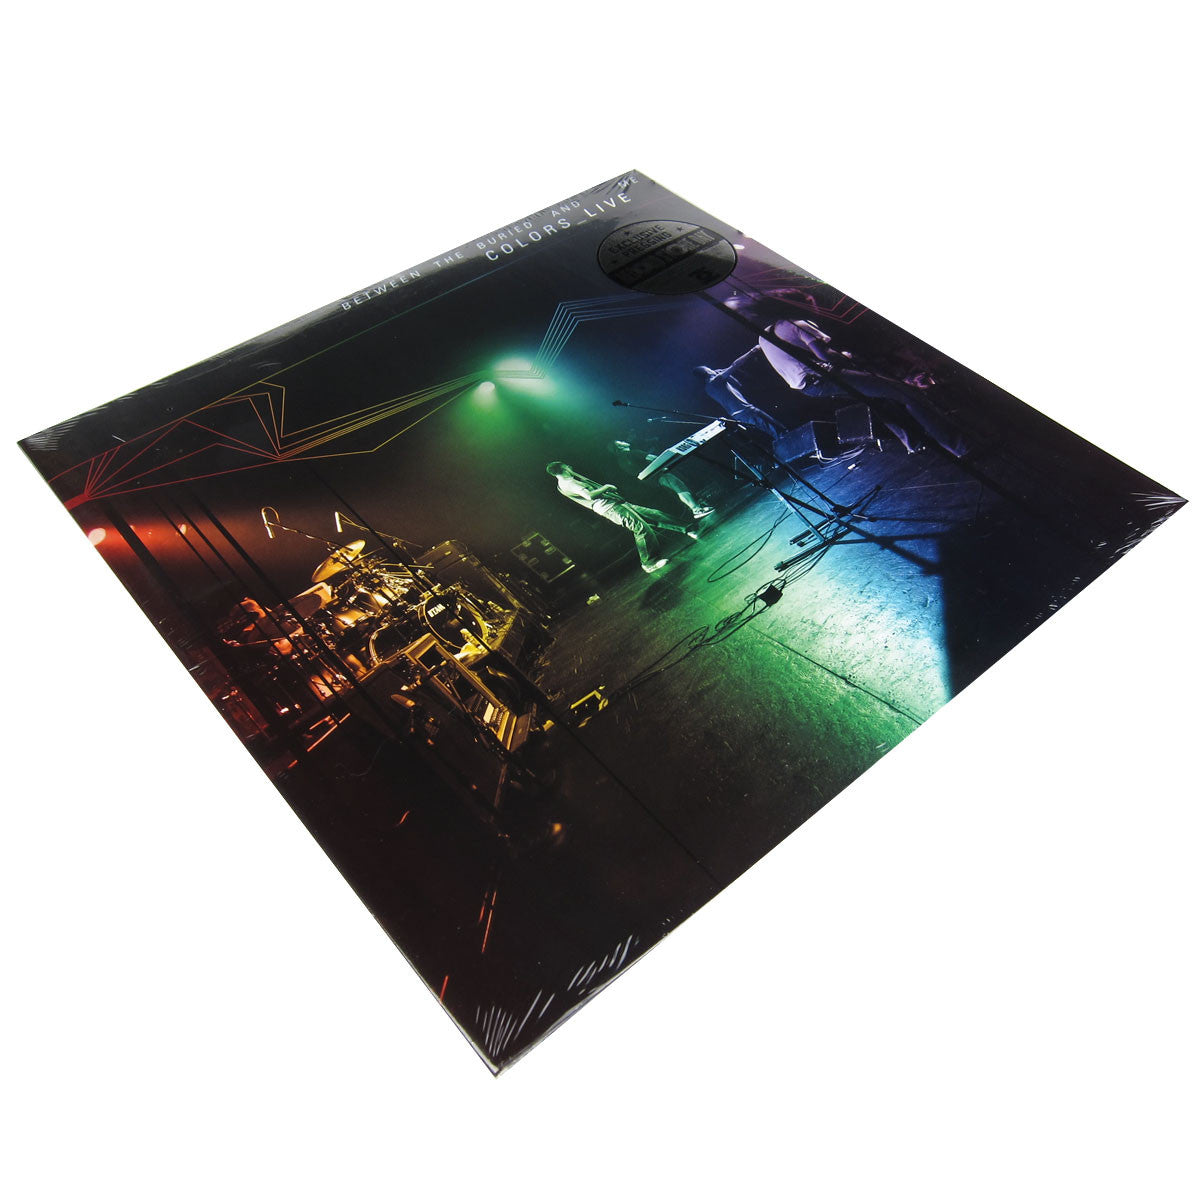 Between The Buried And Me Colors Live Vinyl 2lp Record